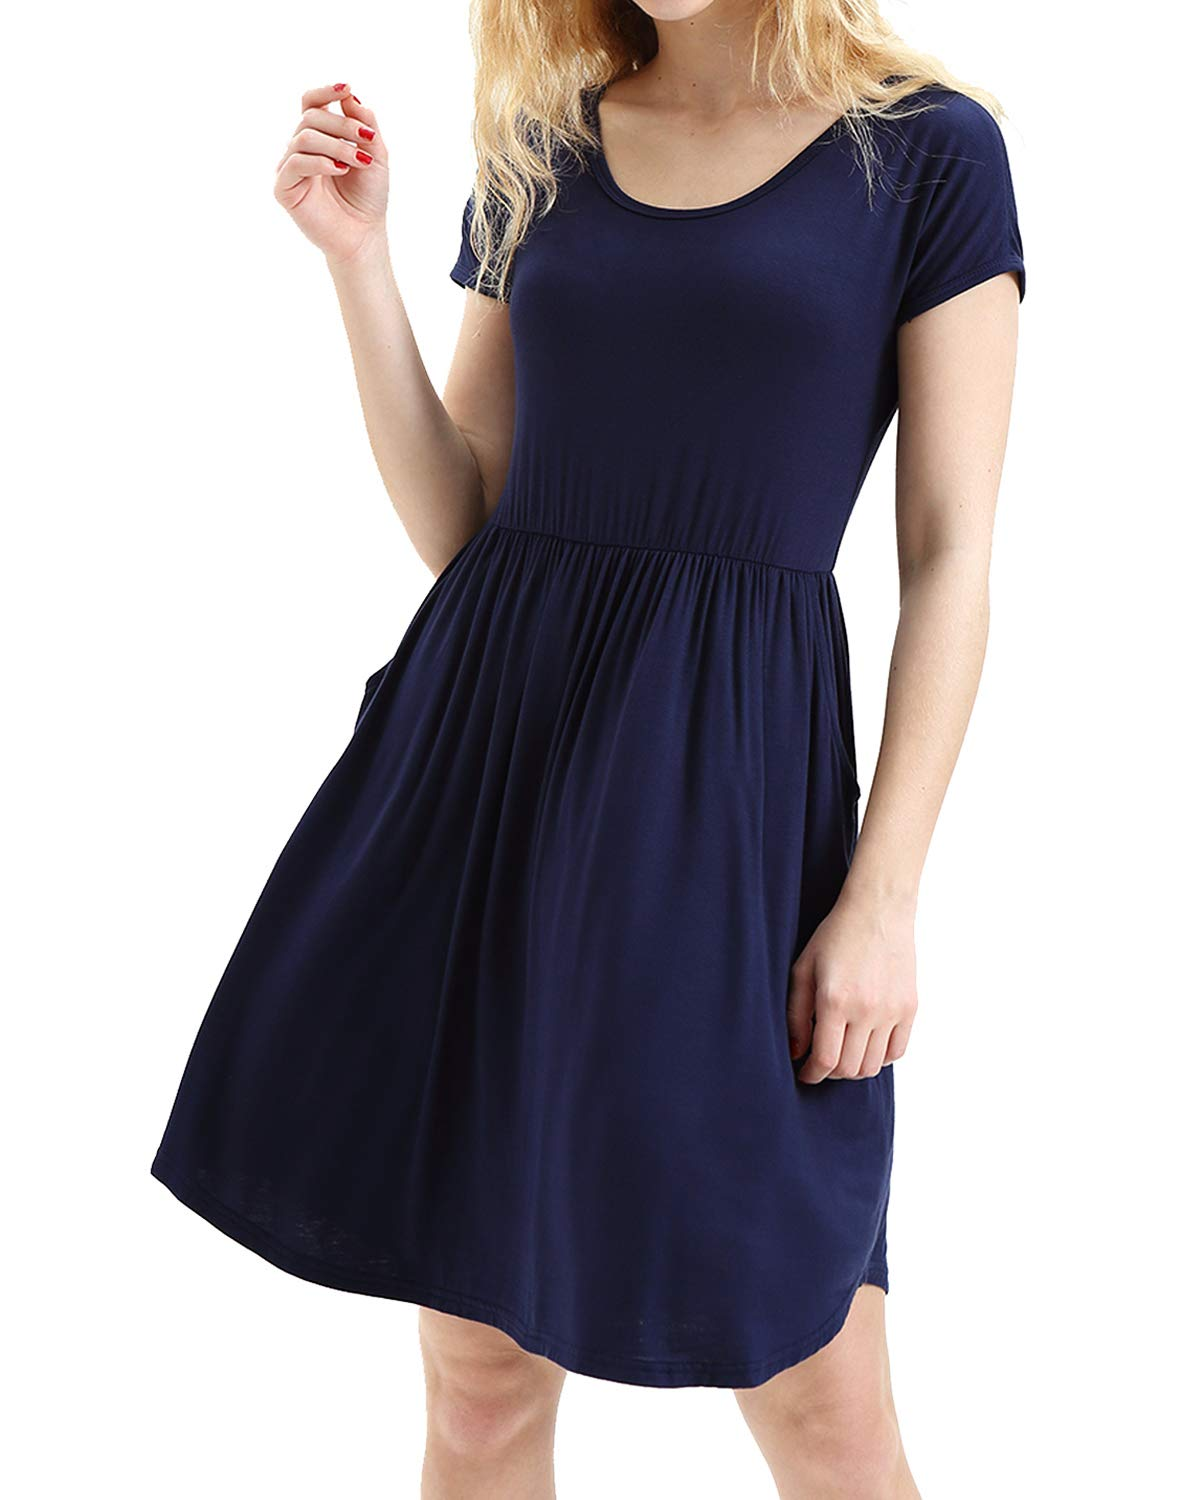 deesdail Dress Shirts for Women Business Casual, Ladies Scoop Neck Short Sleeve Midi Dresses Knee Length Comfy Long Tunic with Pockets Navy Blue L